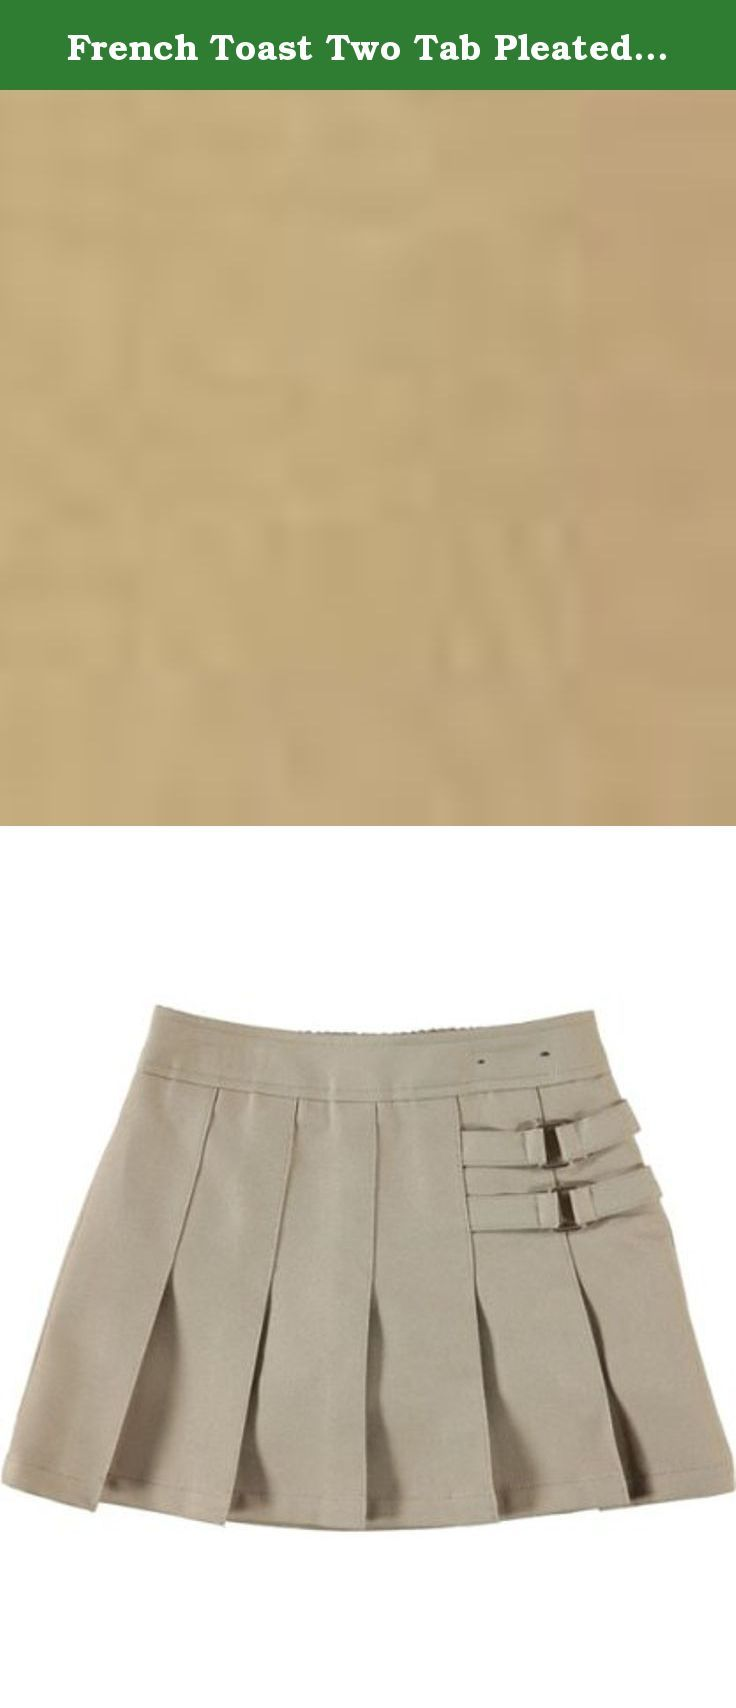 French Toast Two Tab Pleated Skort - khaki, 4. This skort features two decorative side tabs for a stylish effect along with a side zippered closure. There are pleats on the front of the skort for an added look, which takes a simple skort and adds some flavor to give your child the look they want. Shorts inside for modesty and sport. Style meets sophistication in this pleated skort. Measures 12 inches long100% PolyesterMachine WashFrench Toast Official School Wear... Holiday.